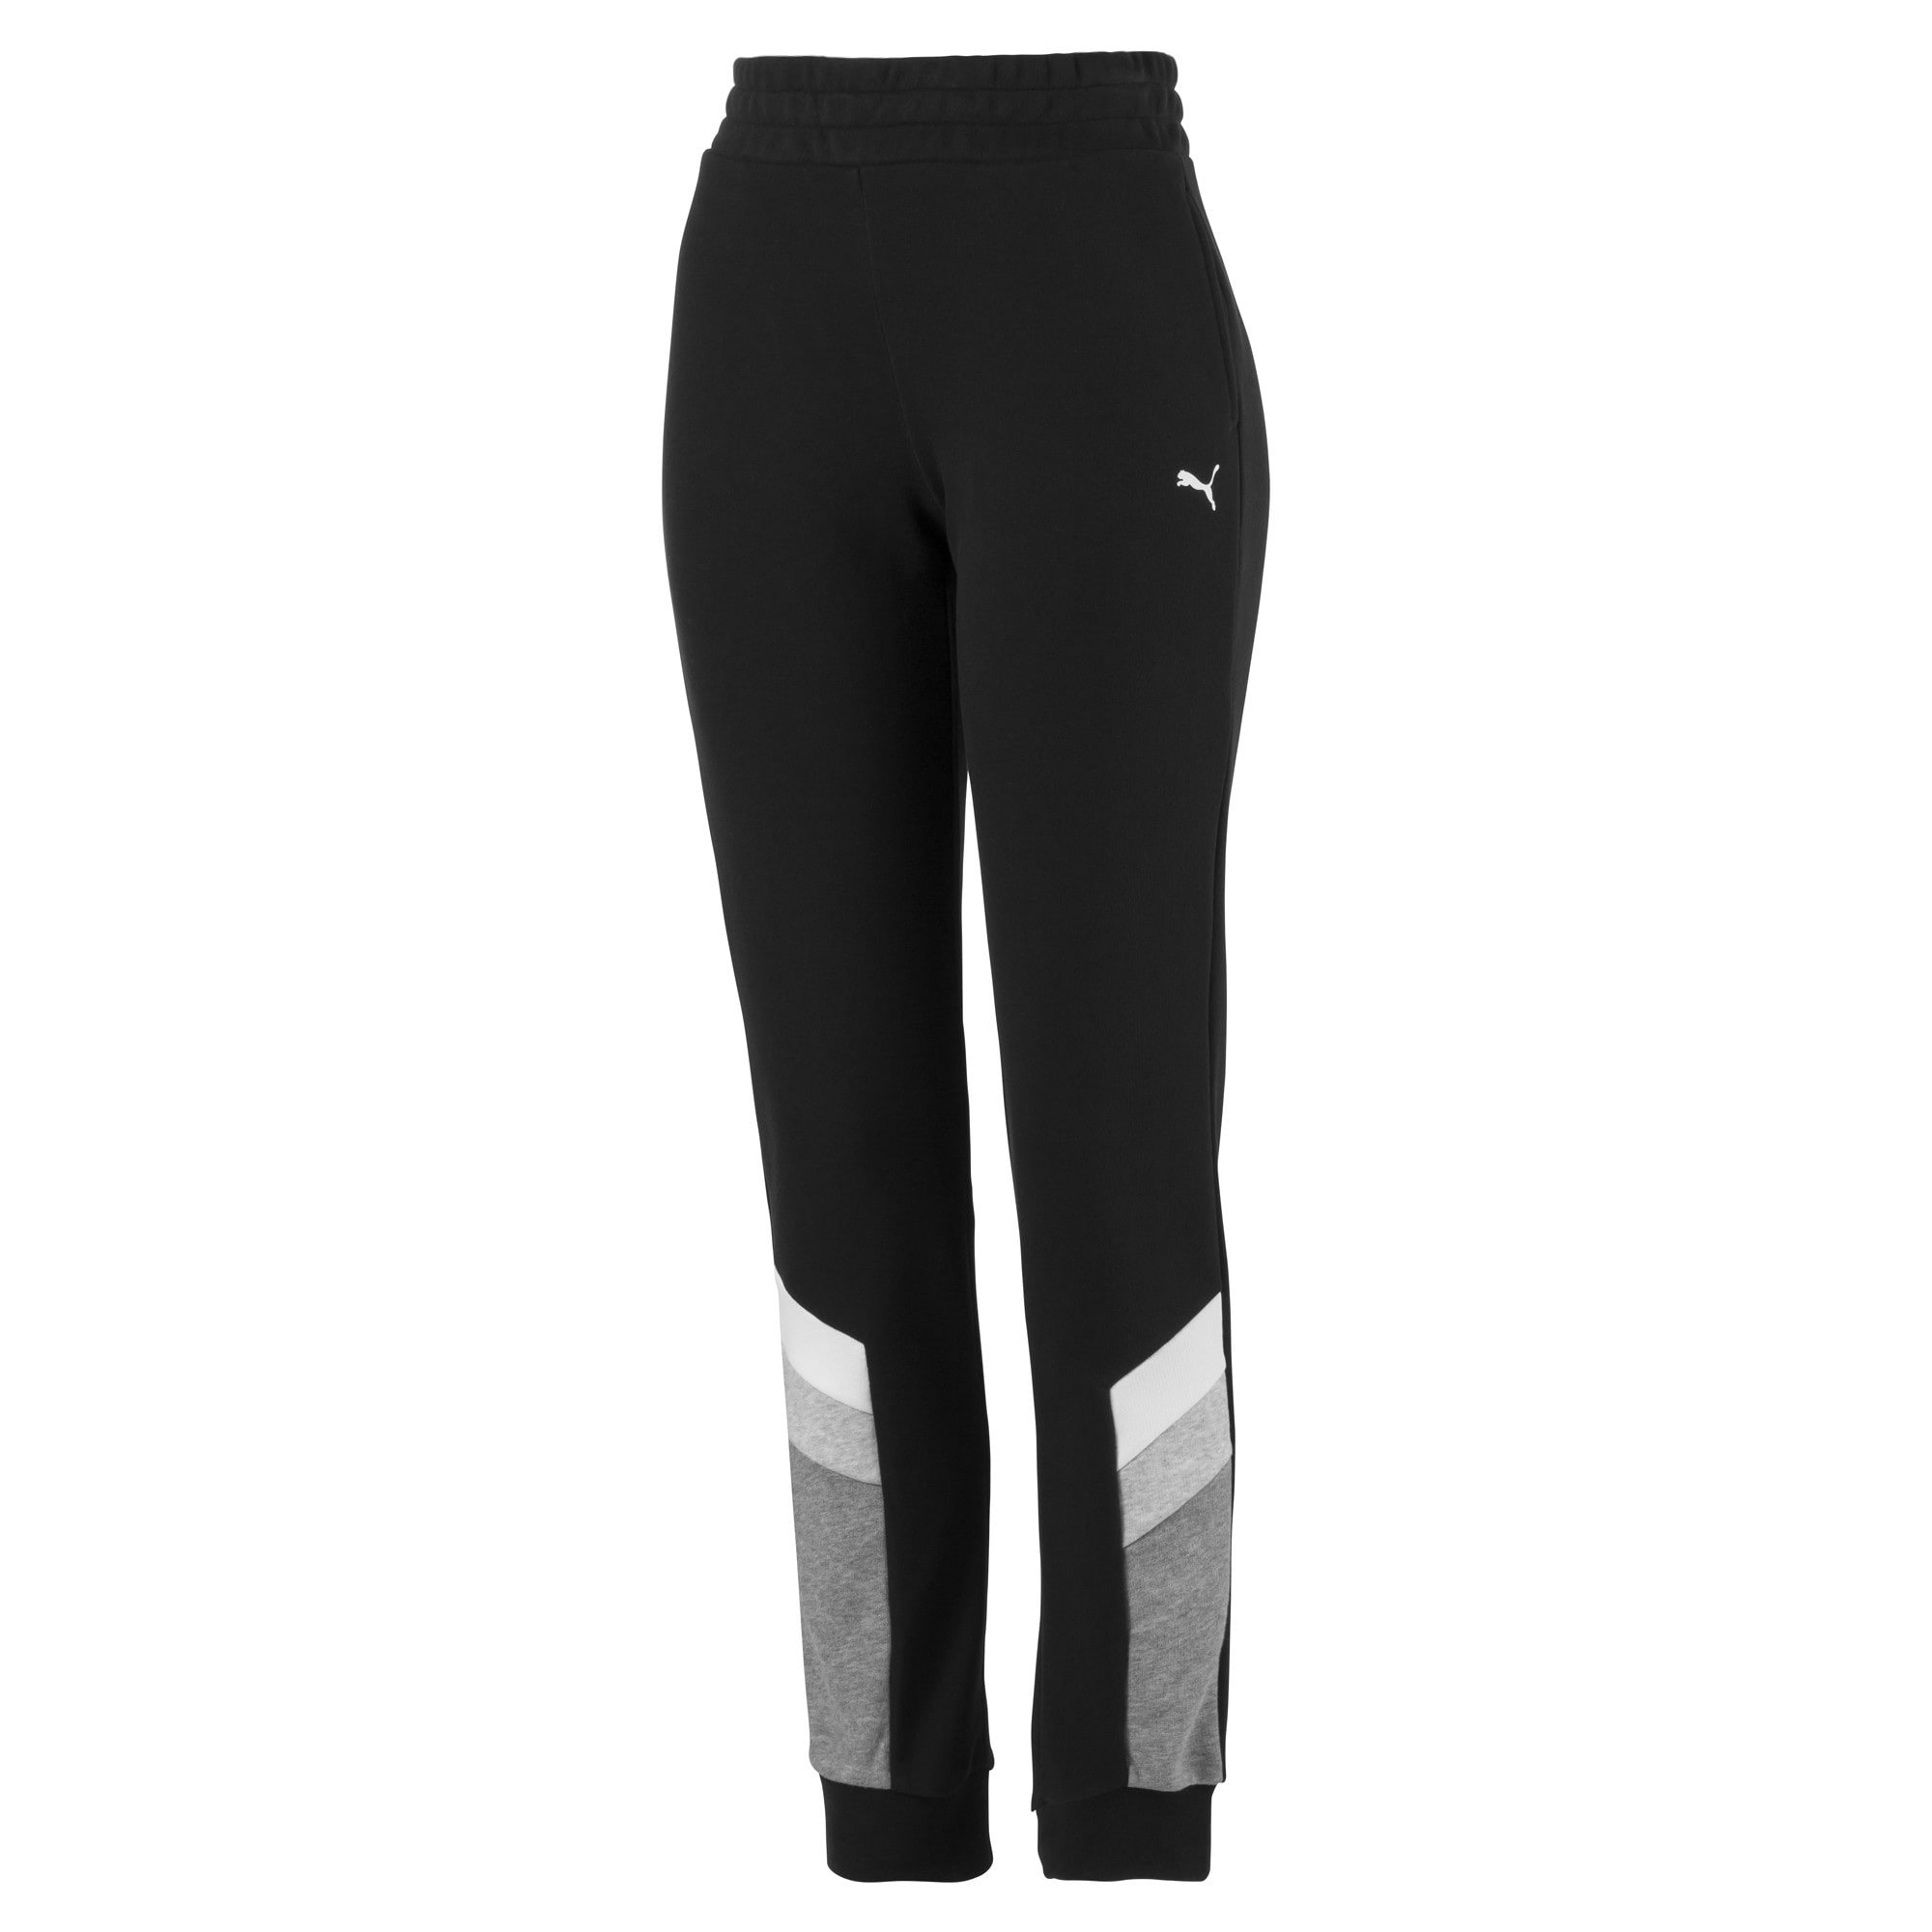 Thumbnail 4 of Athletics Women's Sweatpants, Cotton Black, medium